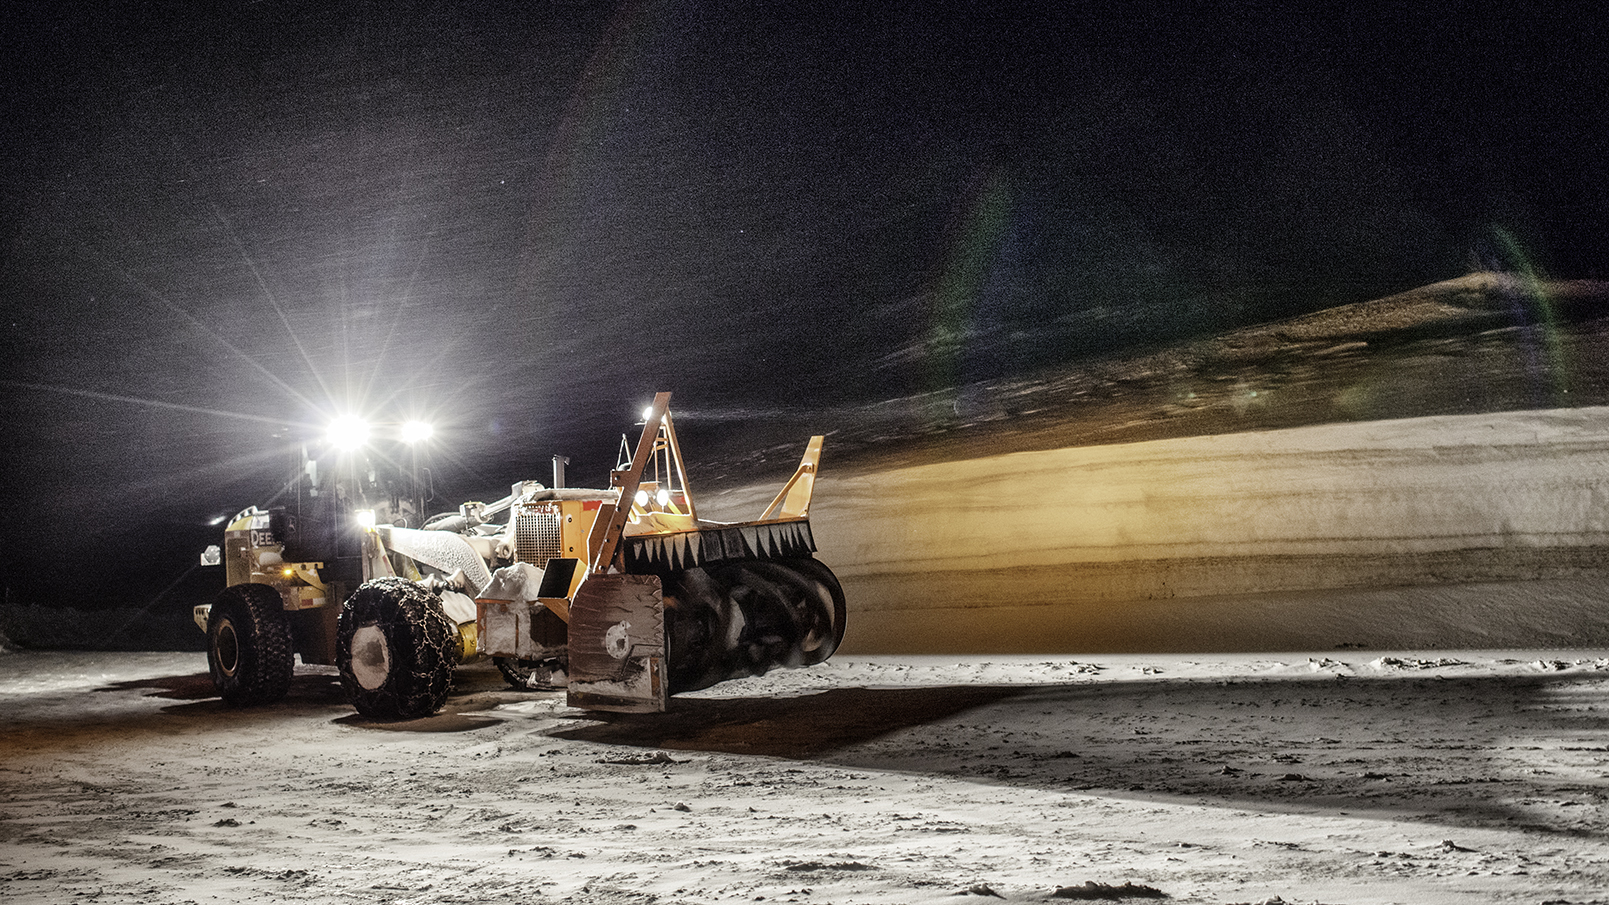 Snow removal equipment operates into the night on Loveland Pass. Notice the wall of snow on the other side of the road.